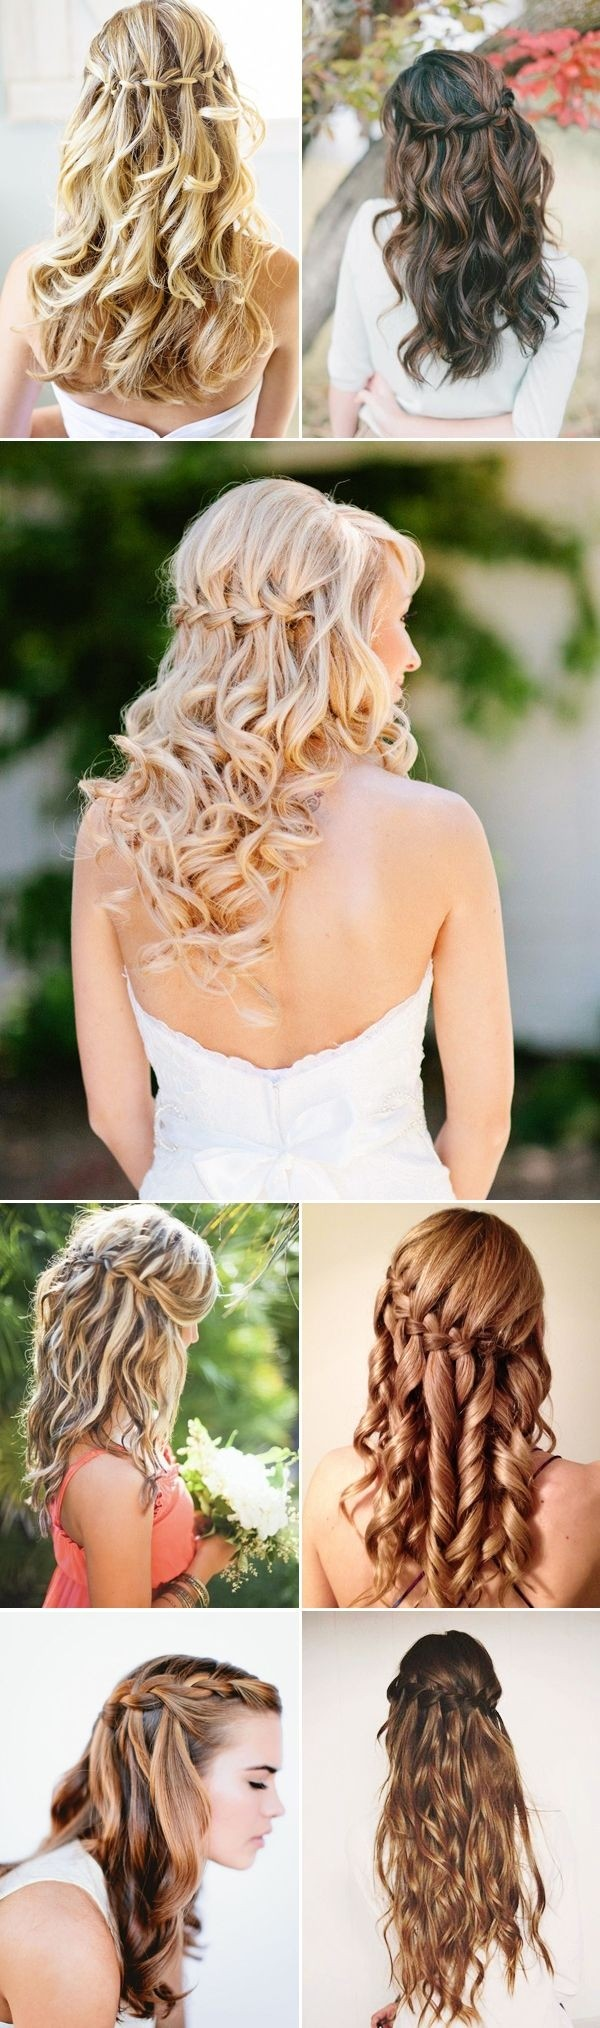 30 Hottest Bridesmaid Hairstyles For Long Hair Popular Haircuts